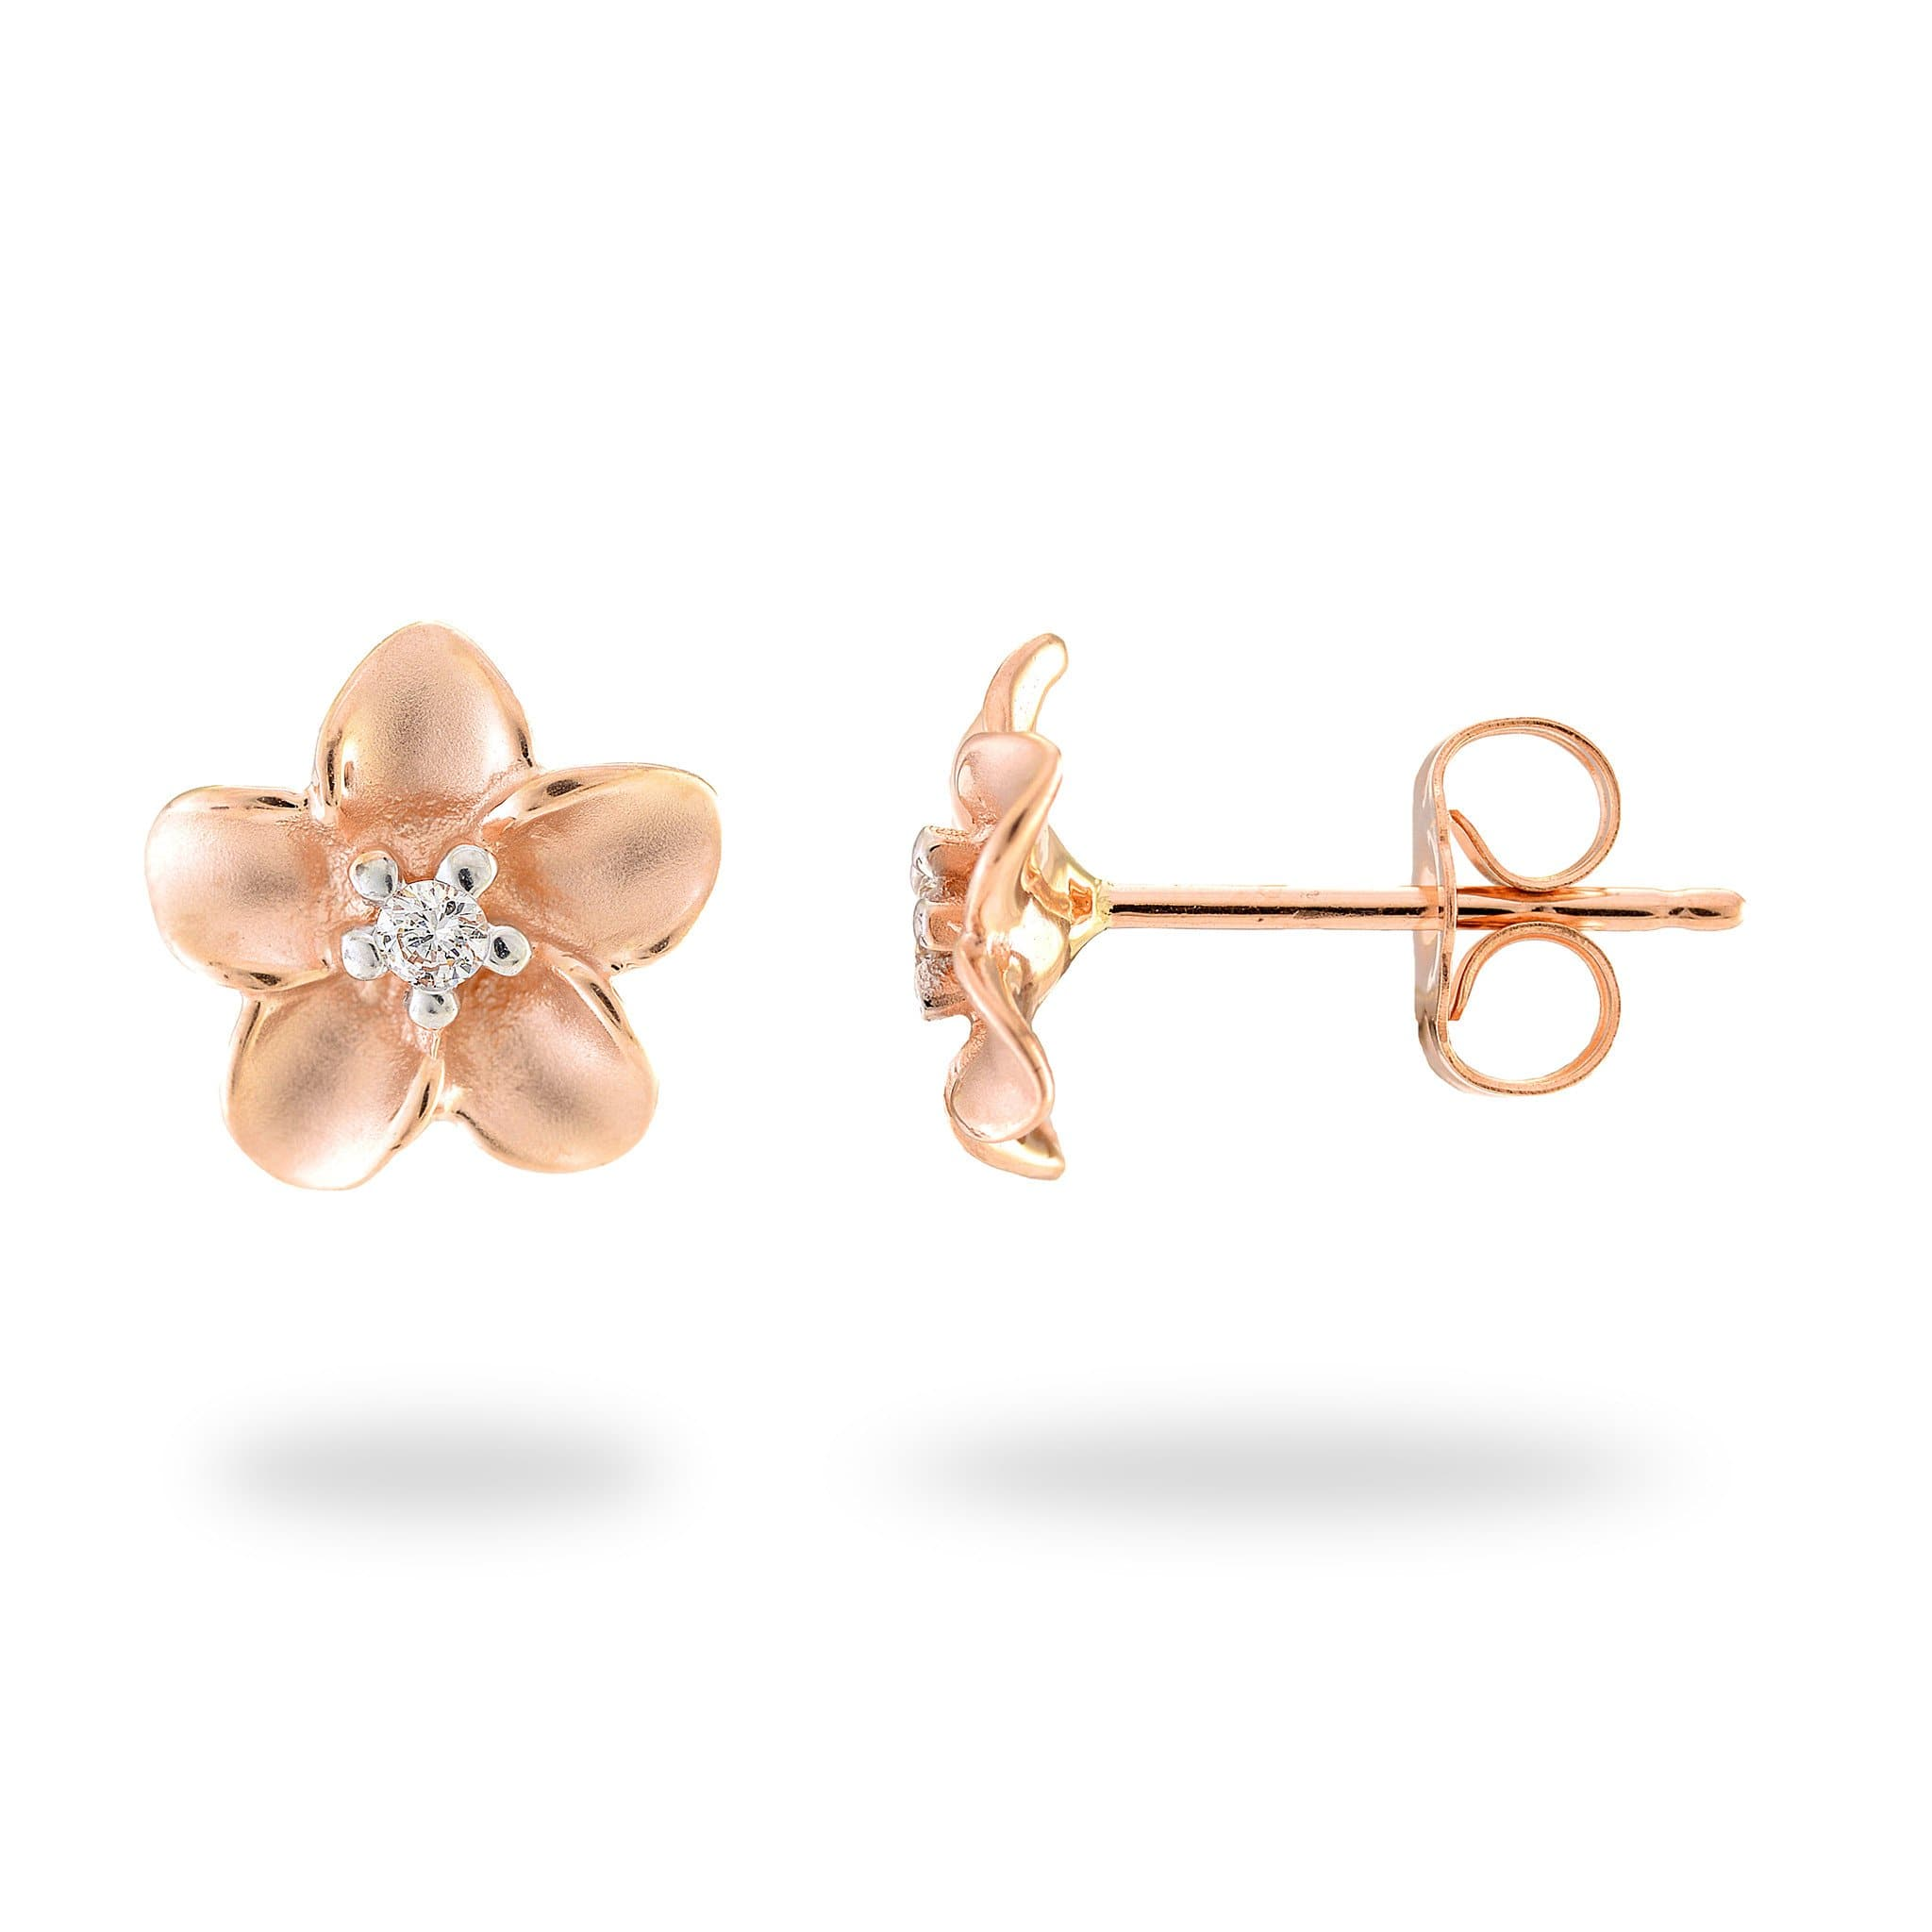 6cc14142f Plumeria Earrings with Diamonds in 14K Rose Gold - 9mm